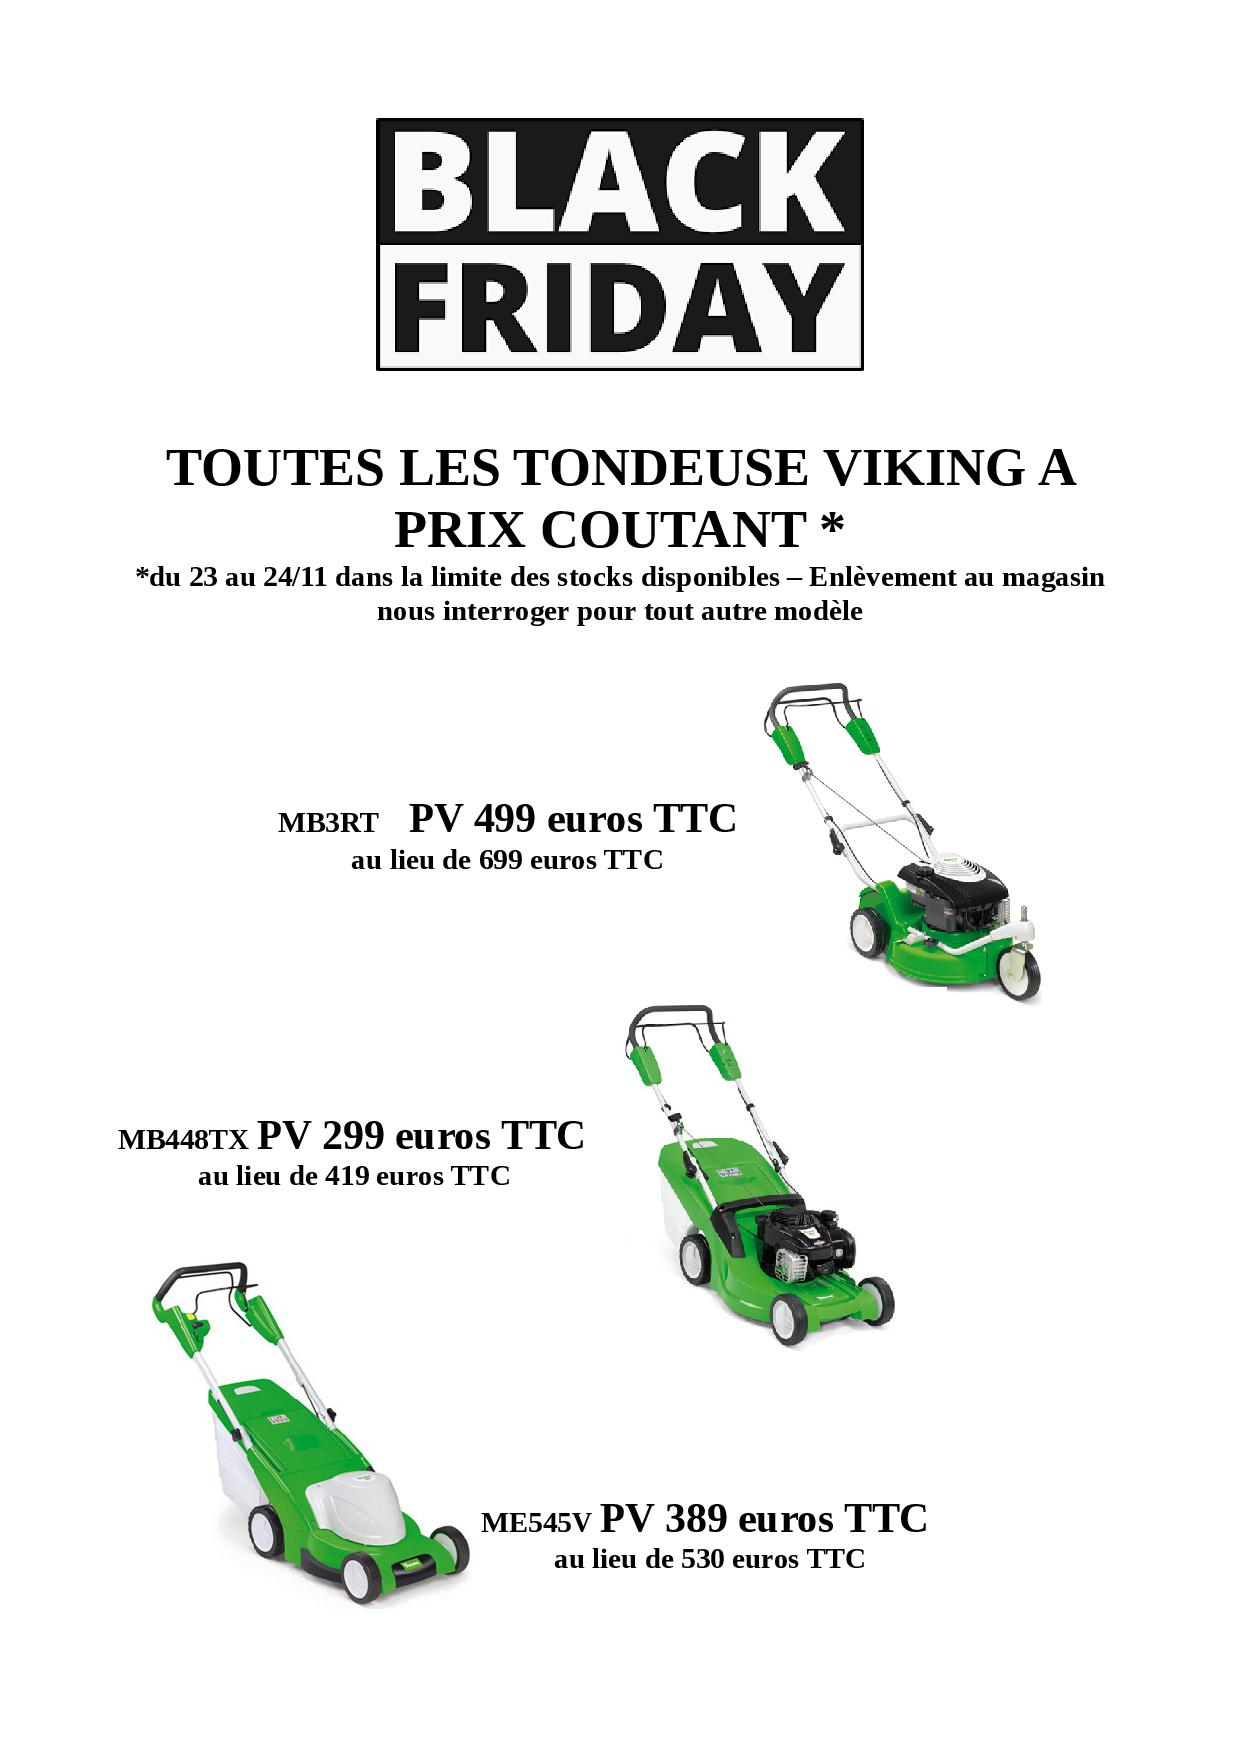 black friday tondeuses viking